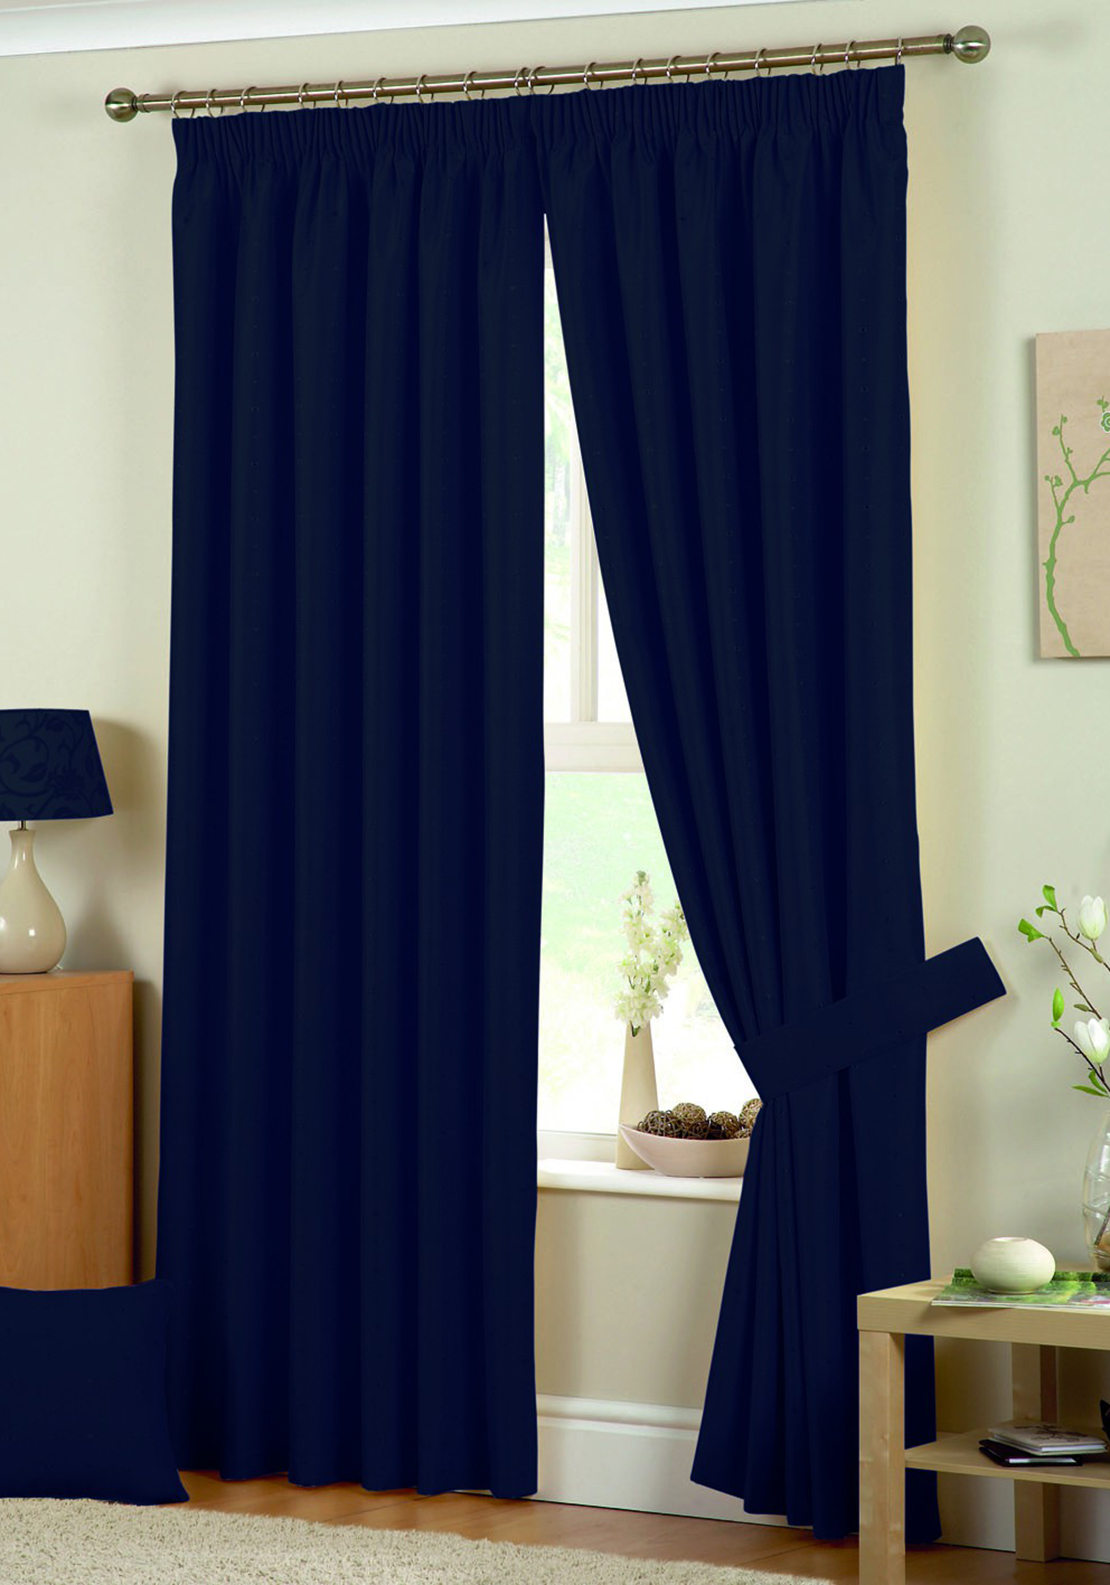 Curtina Hudson Fully Lined Curtains, Navy